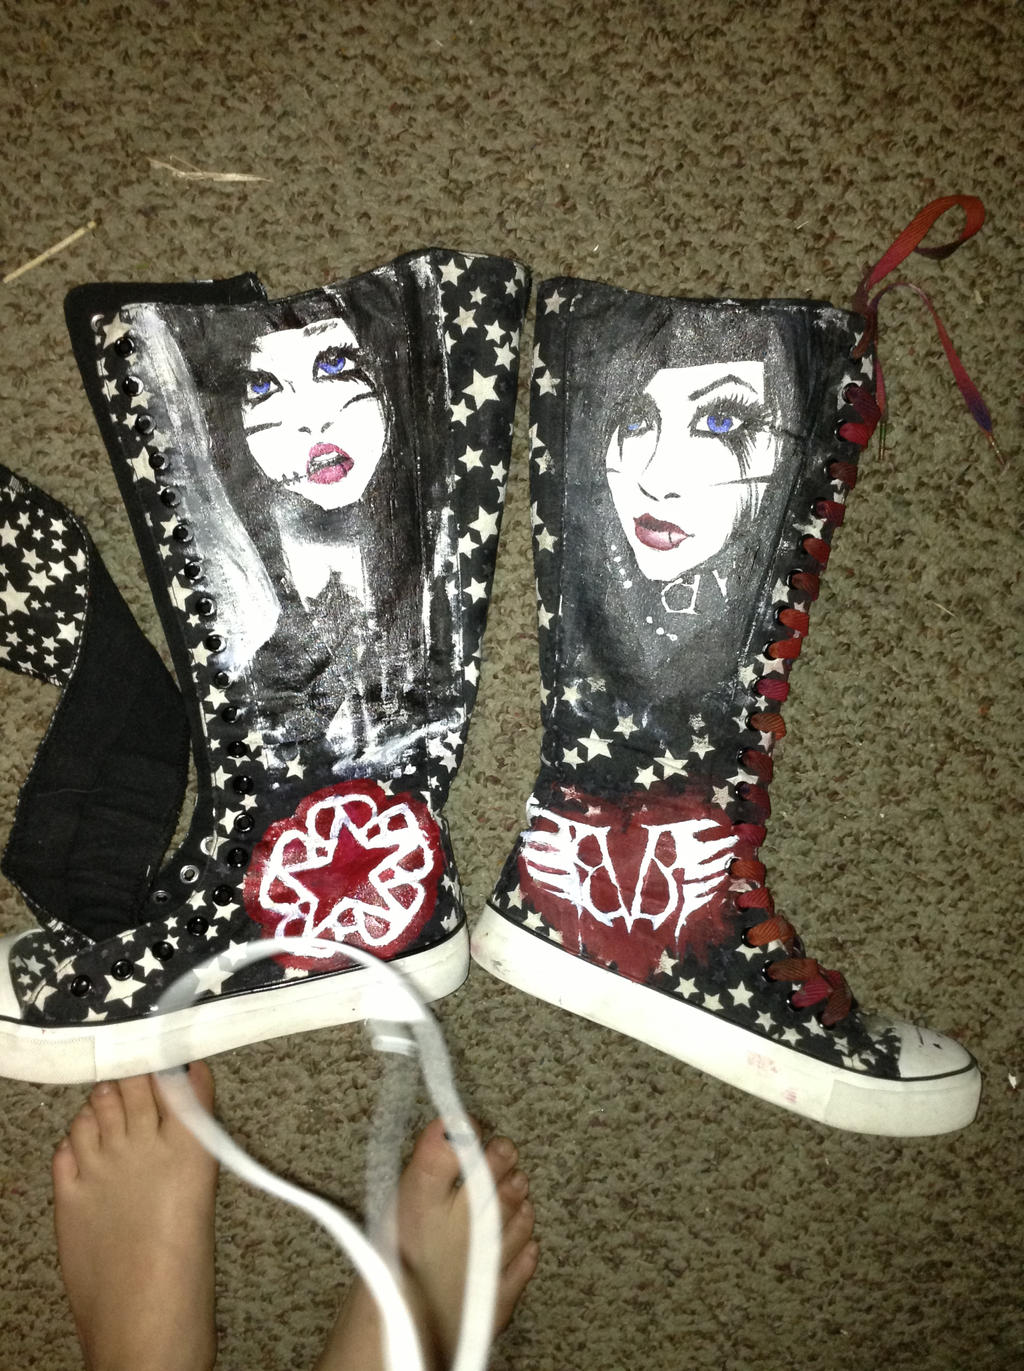 BVB andy biersack shoes painted by SuzukiSan15